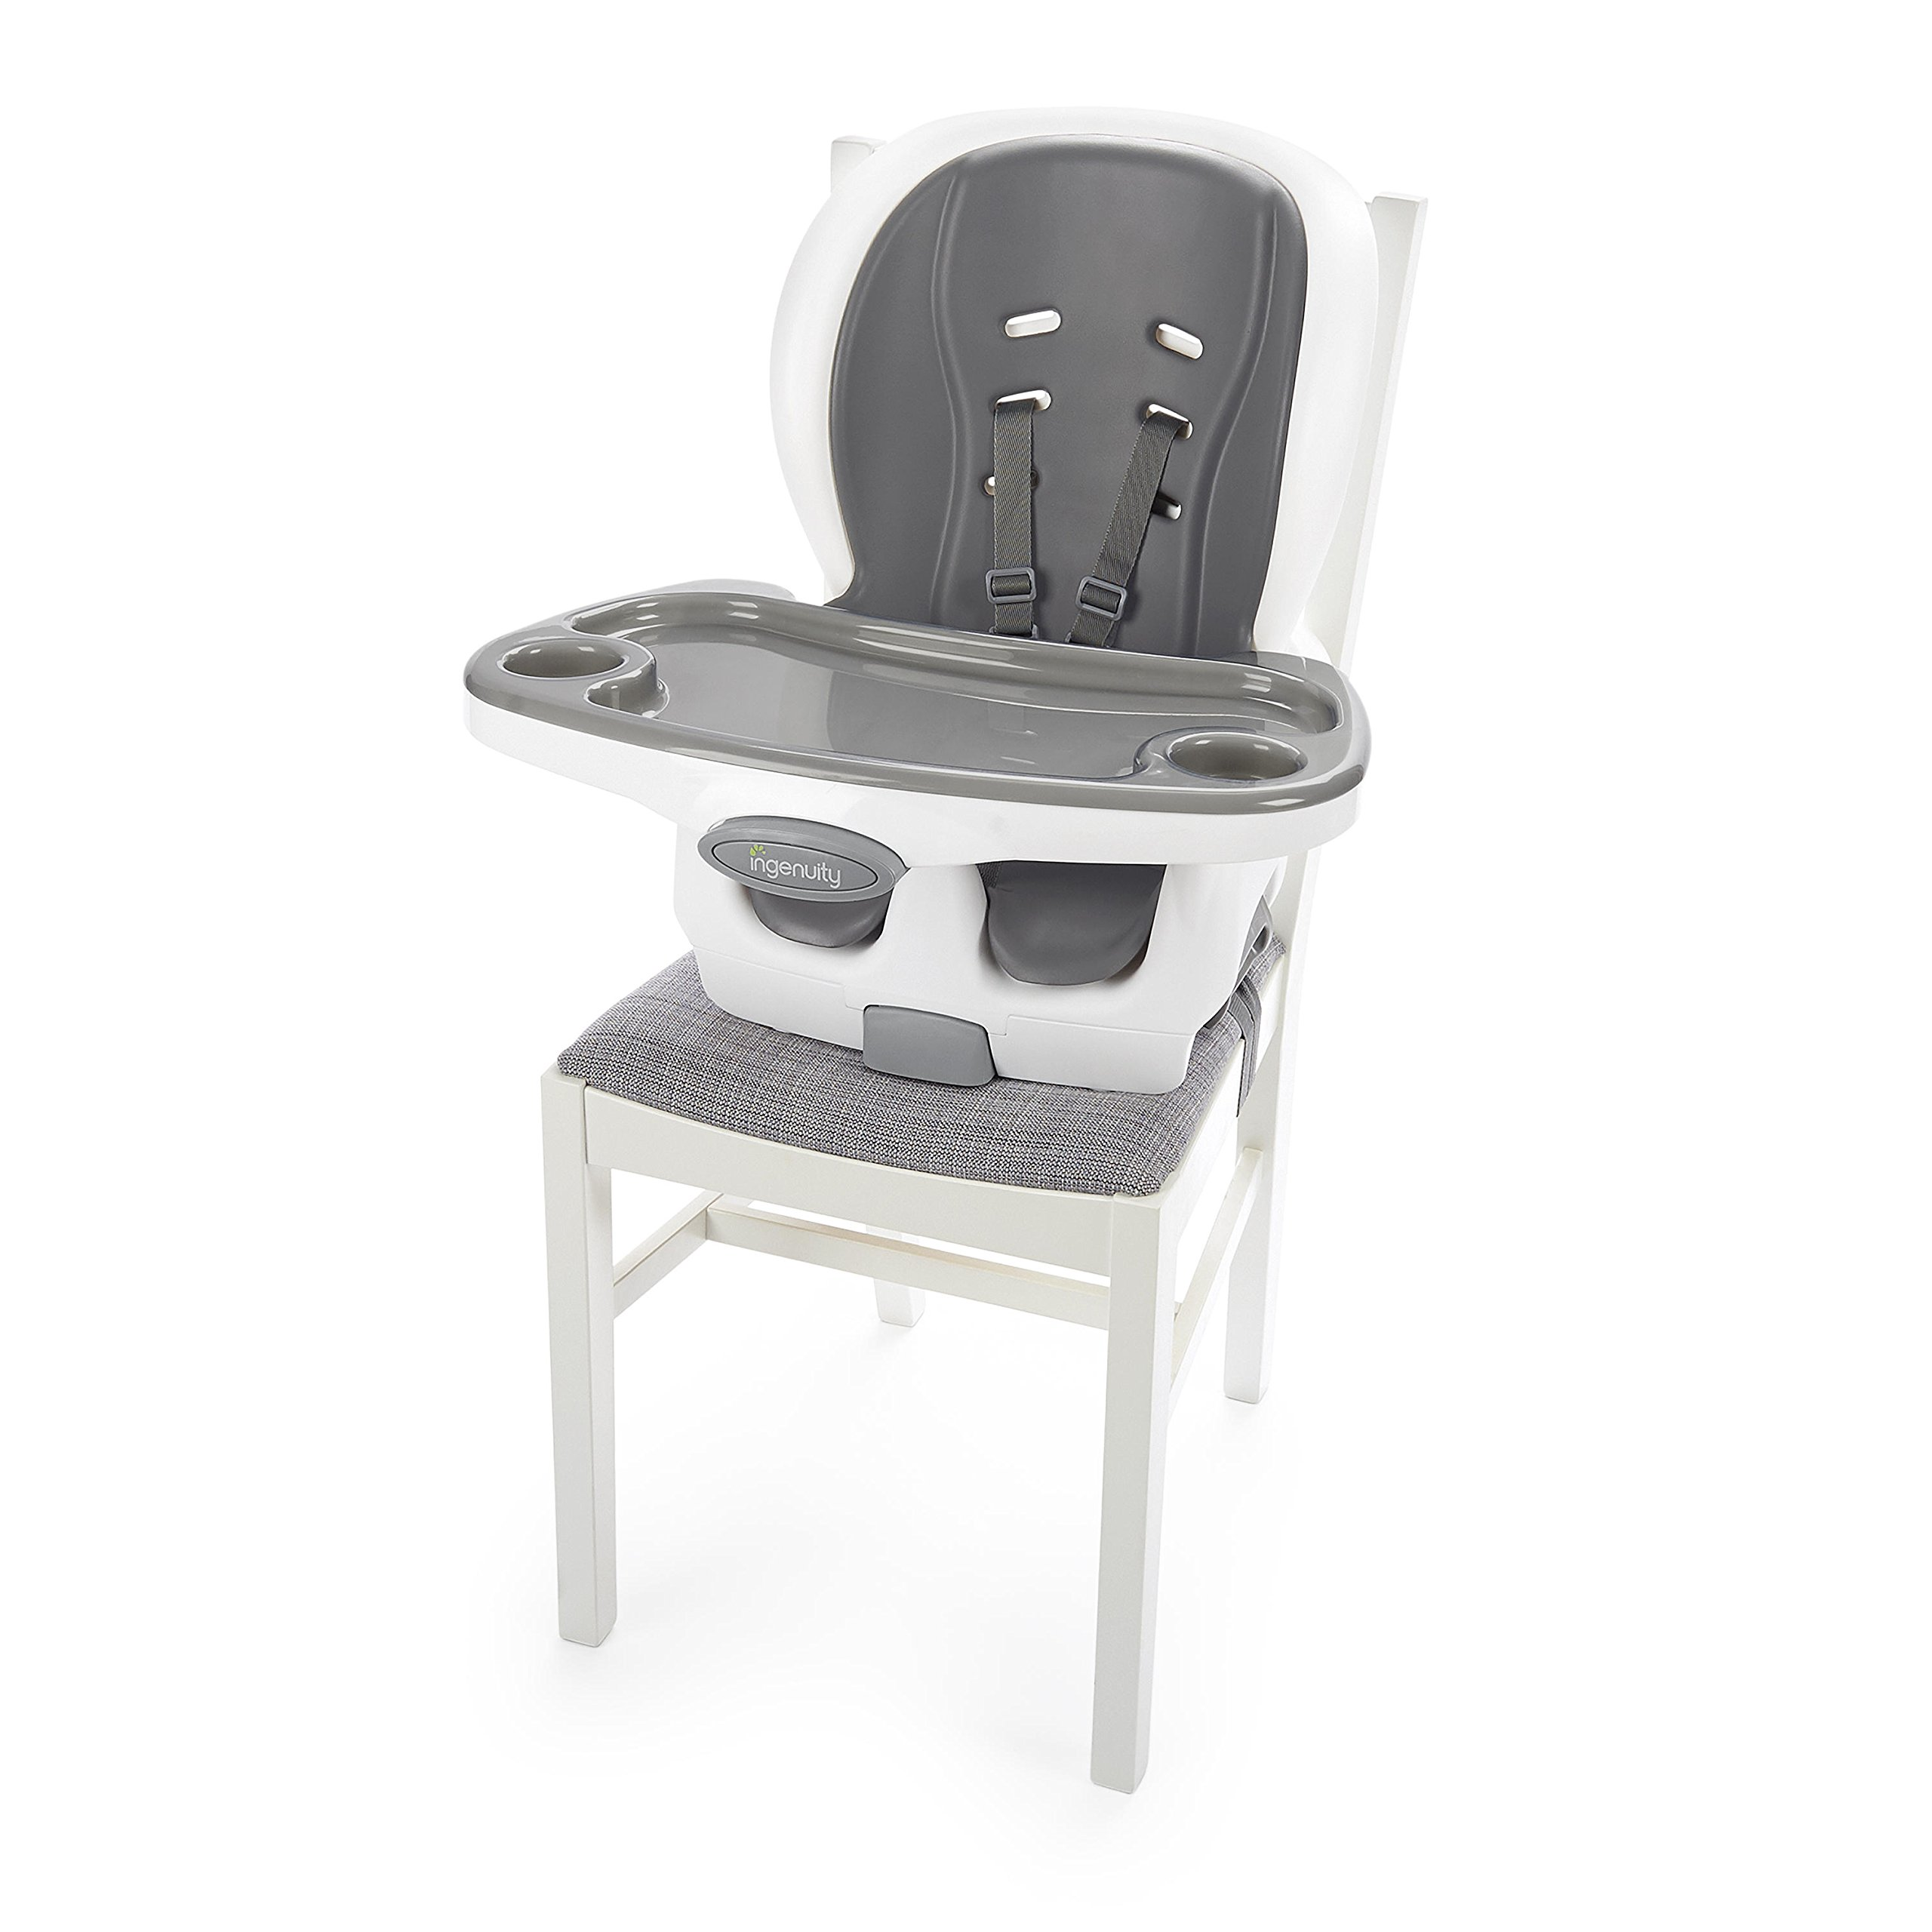 Ingenuity SmartClean Trio Elite 3-in-1 High Chair - Slate - High Chair, Toddler Chair, and Booster by Ingenuity (Image #4)